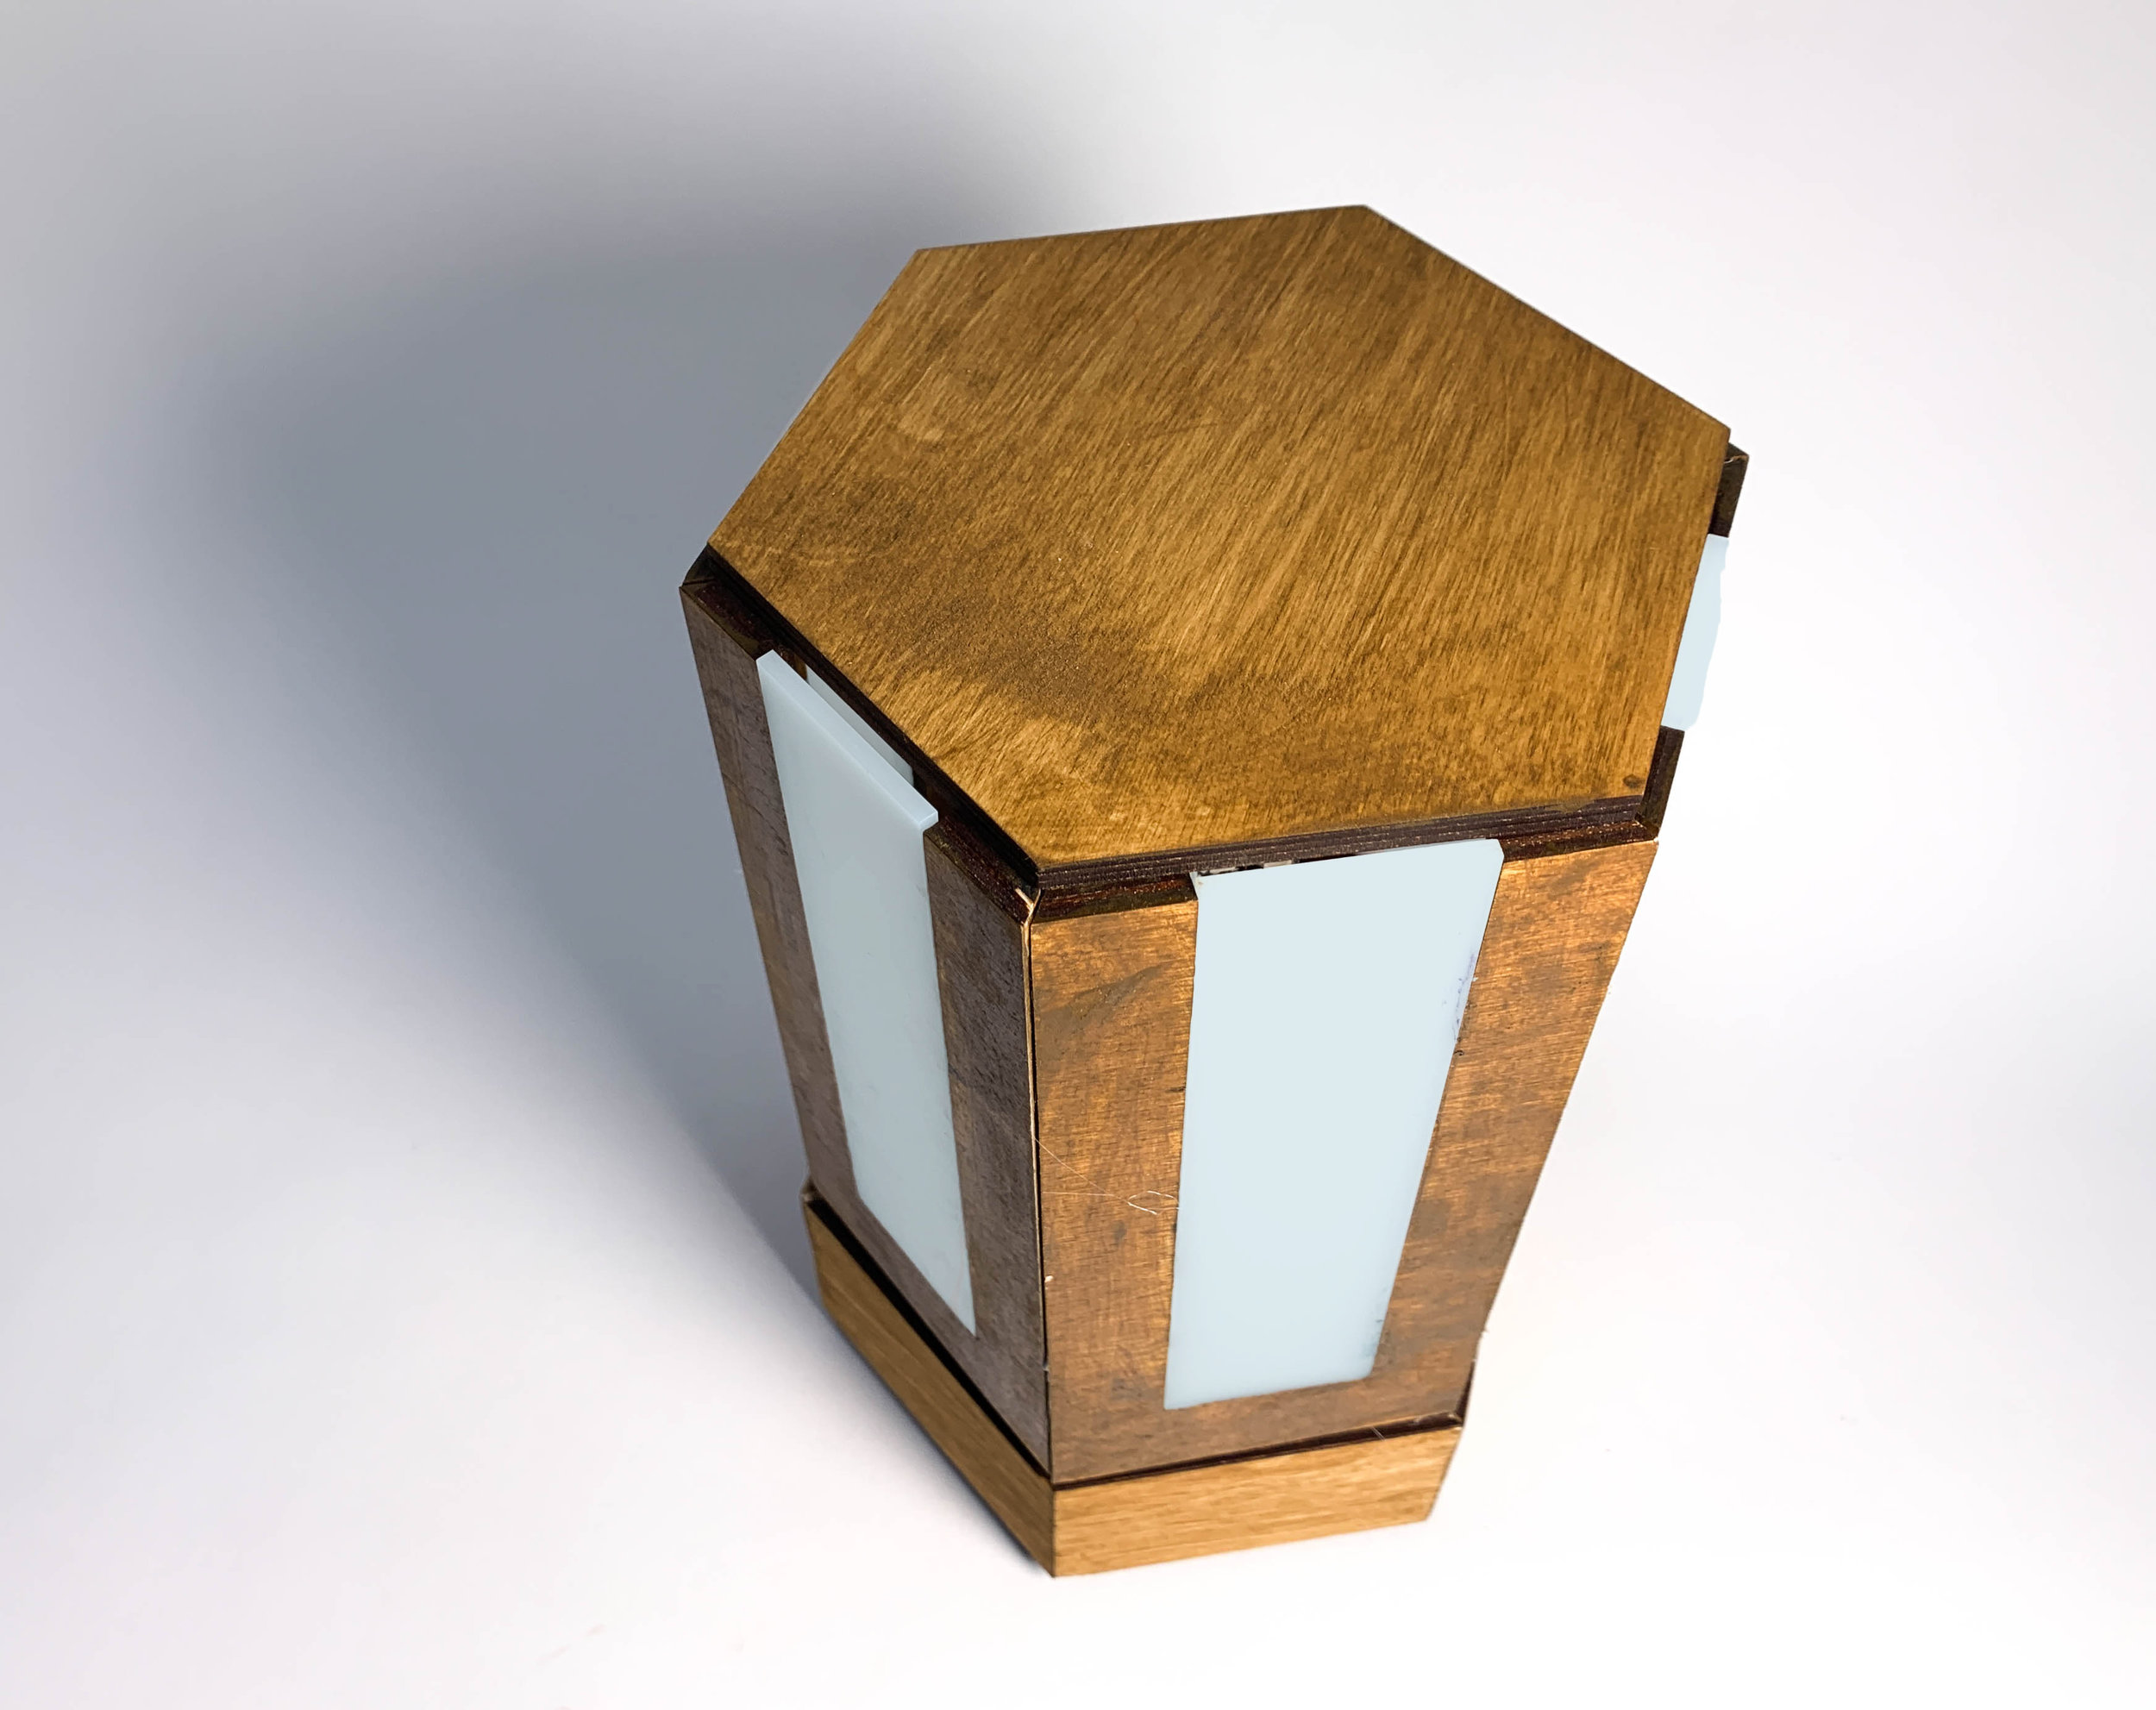 Idle State of Lamp: designed to save money on the electricity bill